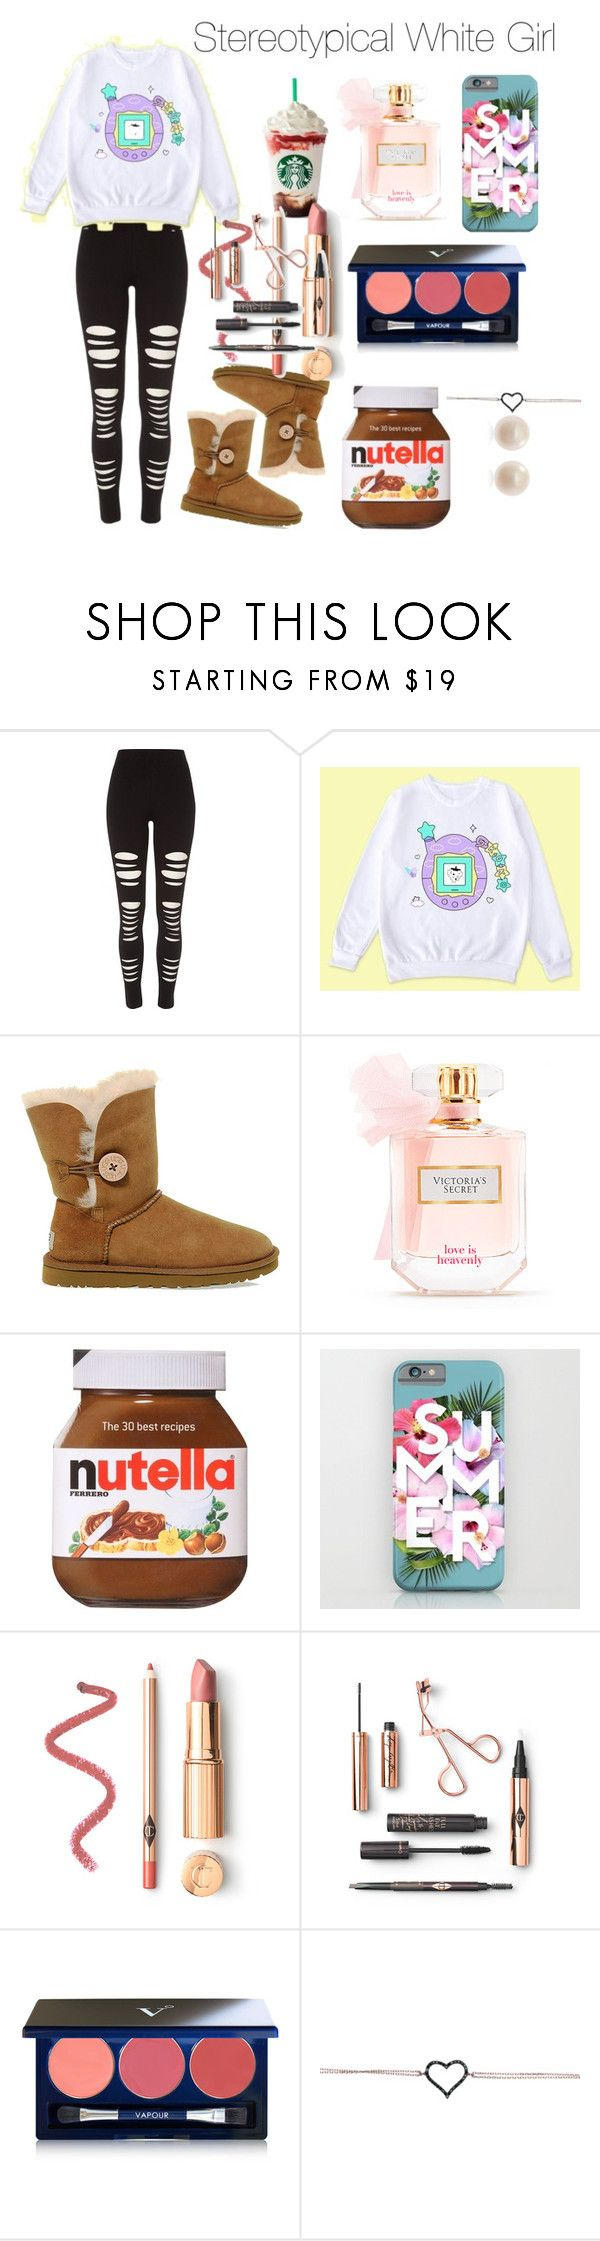 """Stereotypical white Girl"" by cray-crayreeny ❤ liked on Polyvore featuring River Island, UGG, Victoria's Secret, Vapour, Links of London, chic, beautiful and CasualChic"